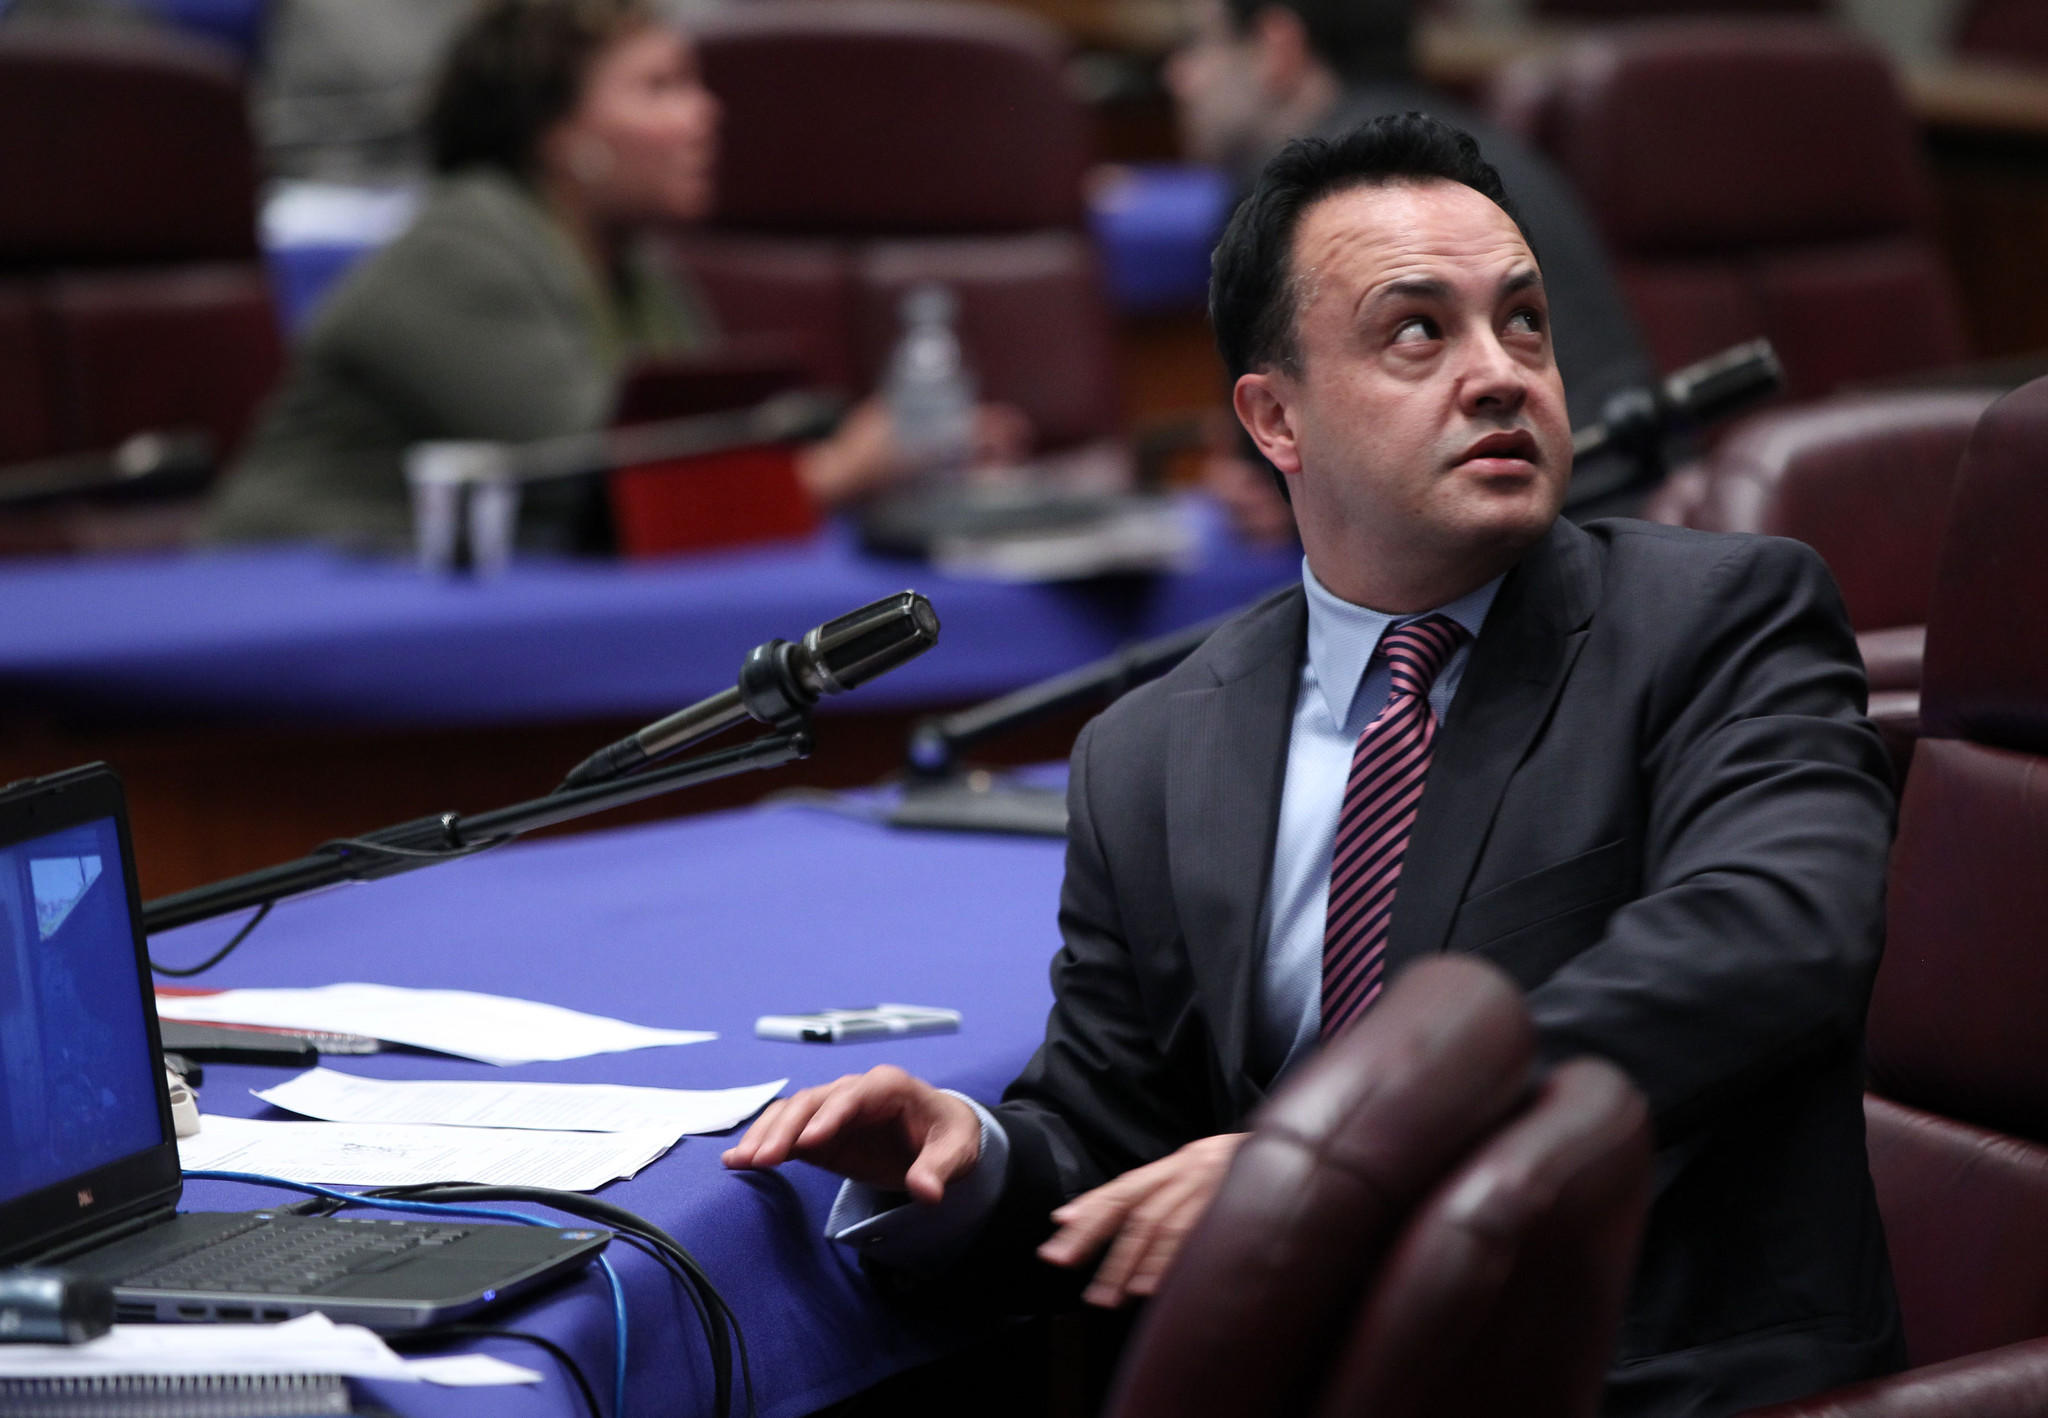 Chicago Ald. George Cardenas, 12th, chairs a meeting of the Health and Environmental Protection Committee of the Chicago City Council on Thursday, April 24, 2014.